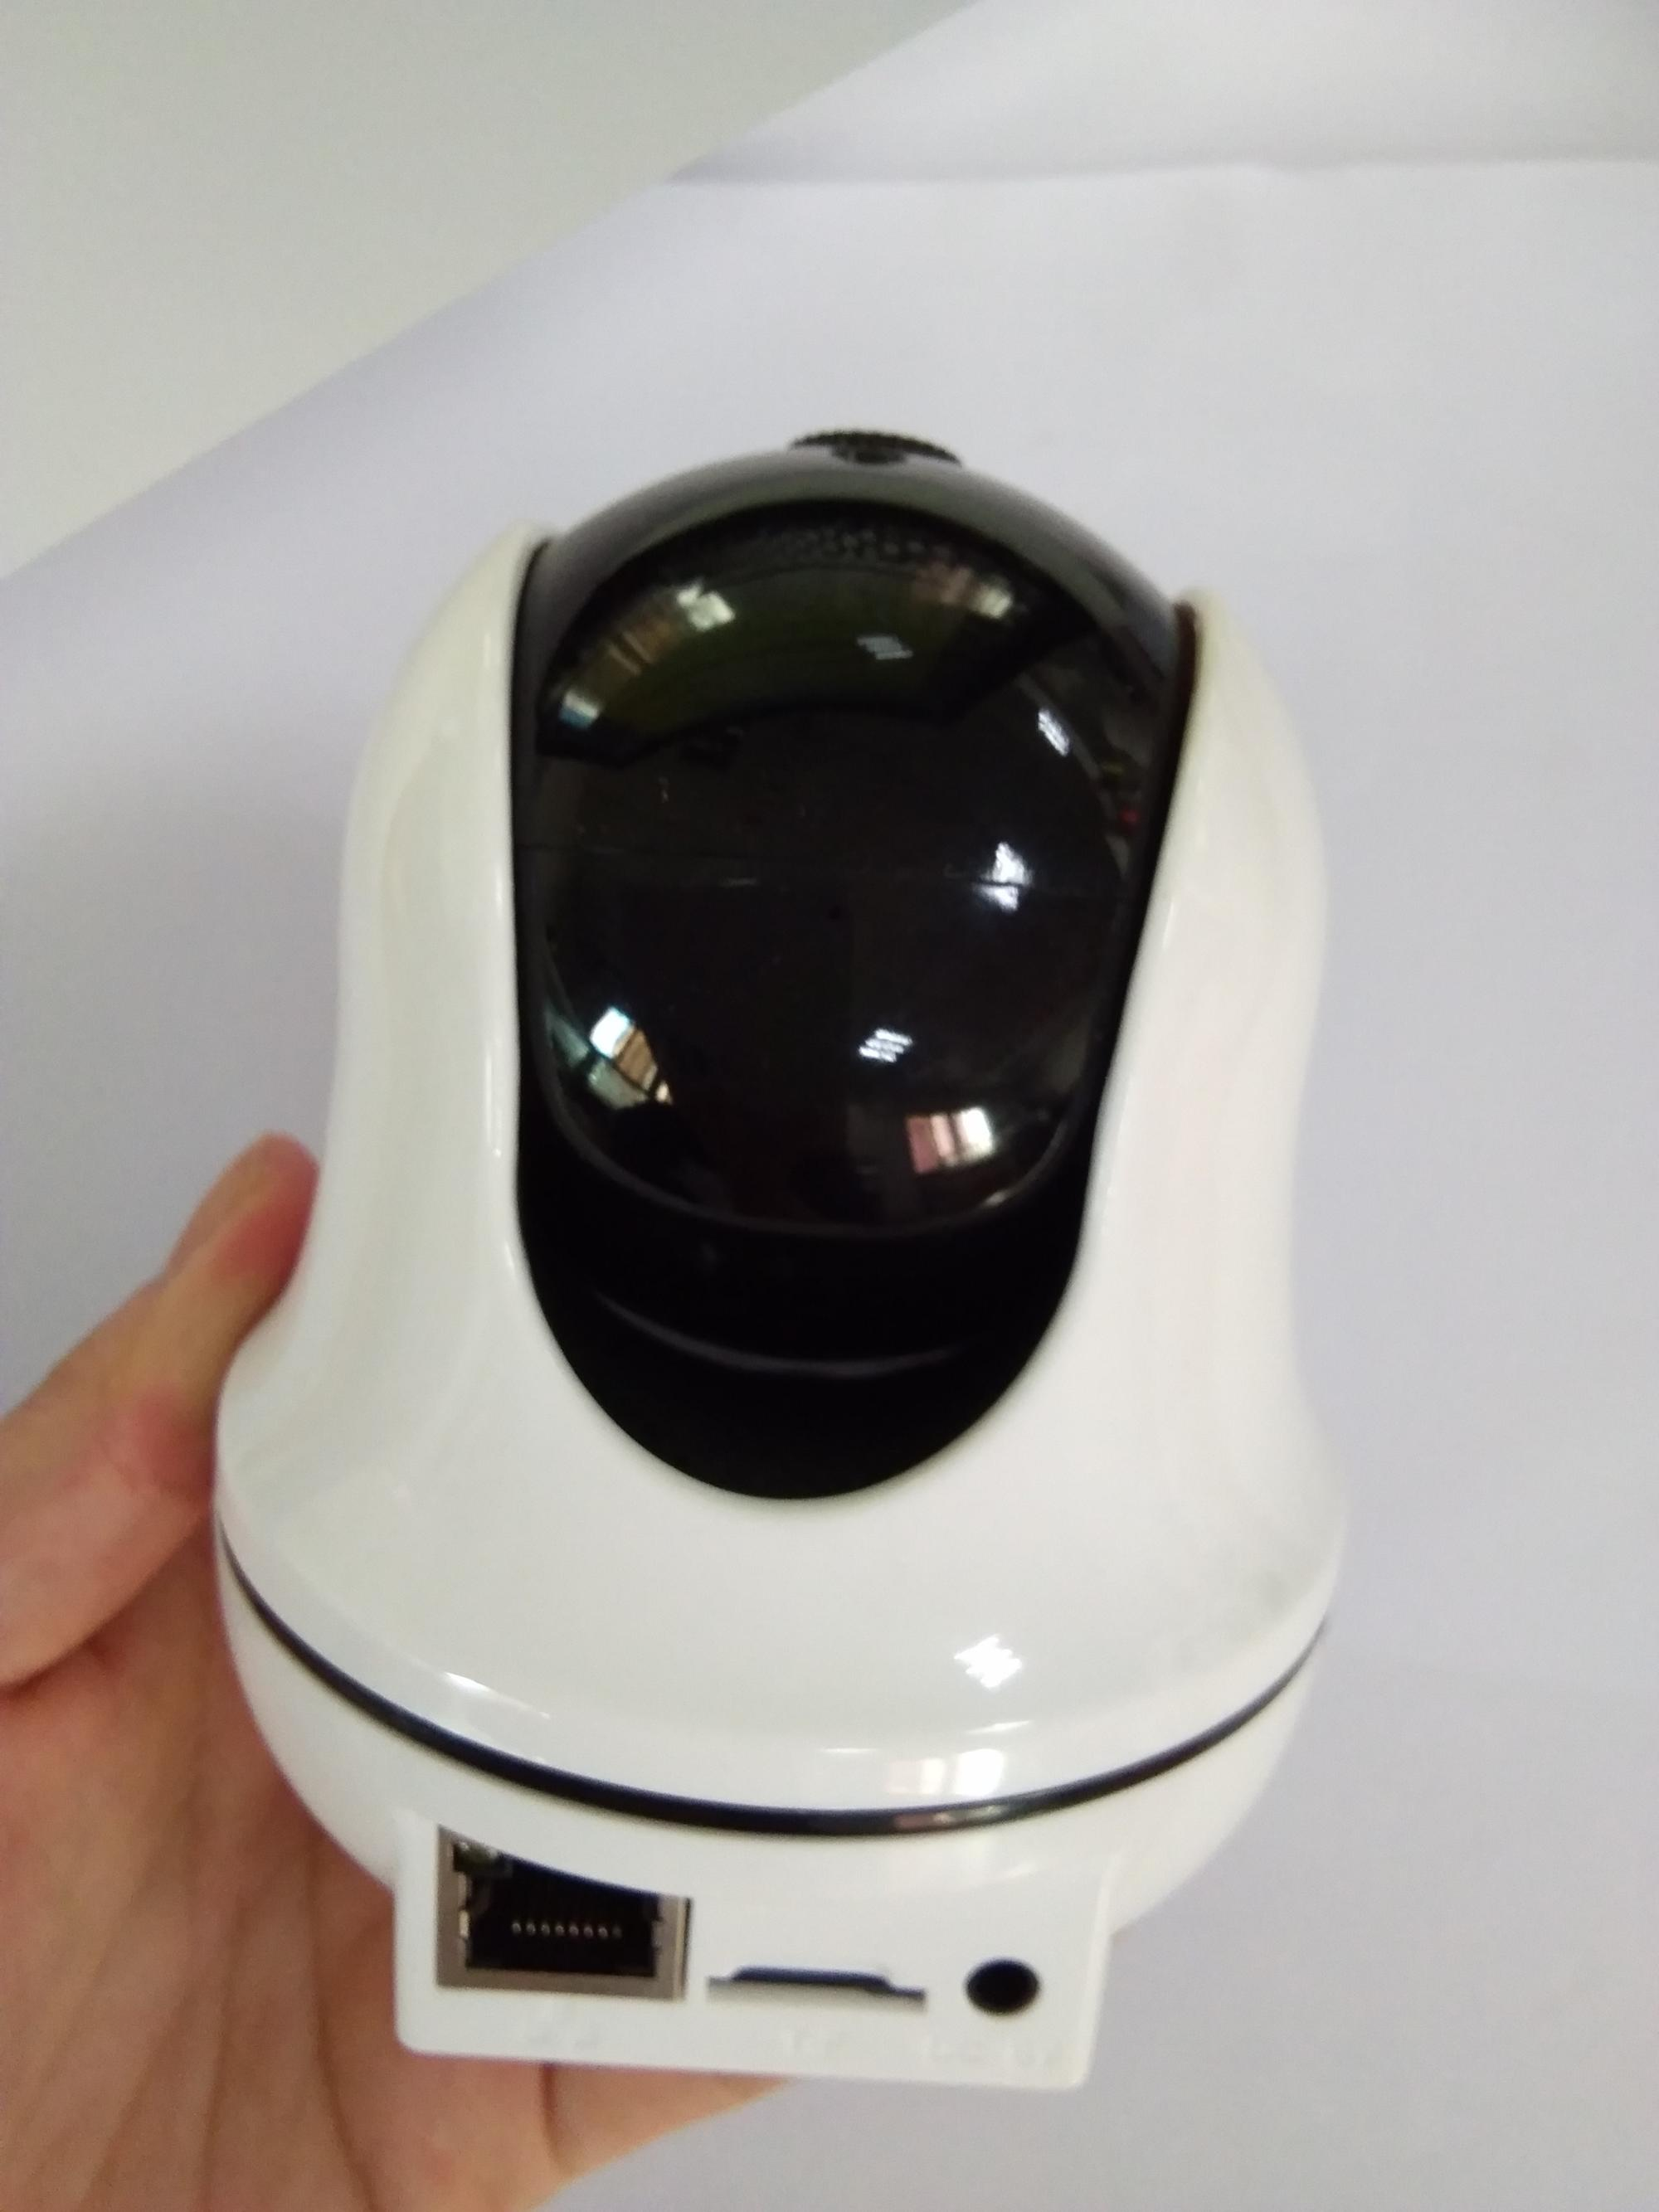 Family guard remote monitoring wifi cctv camera